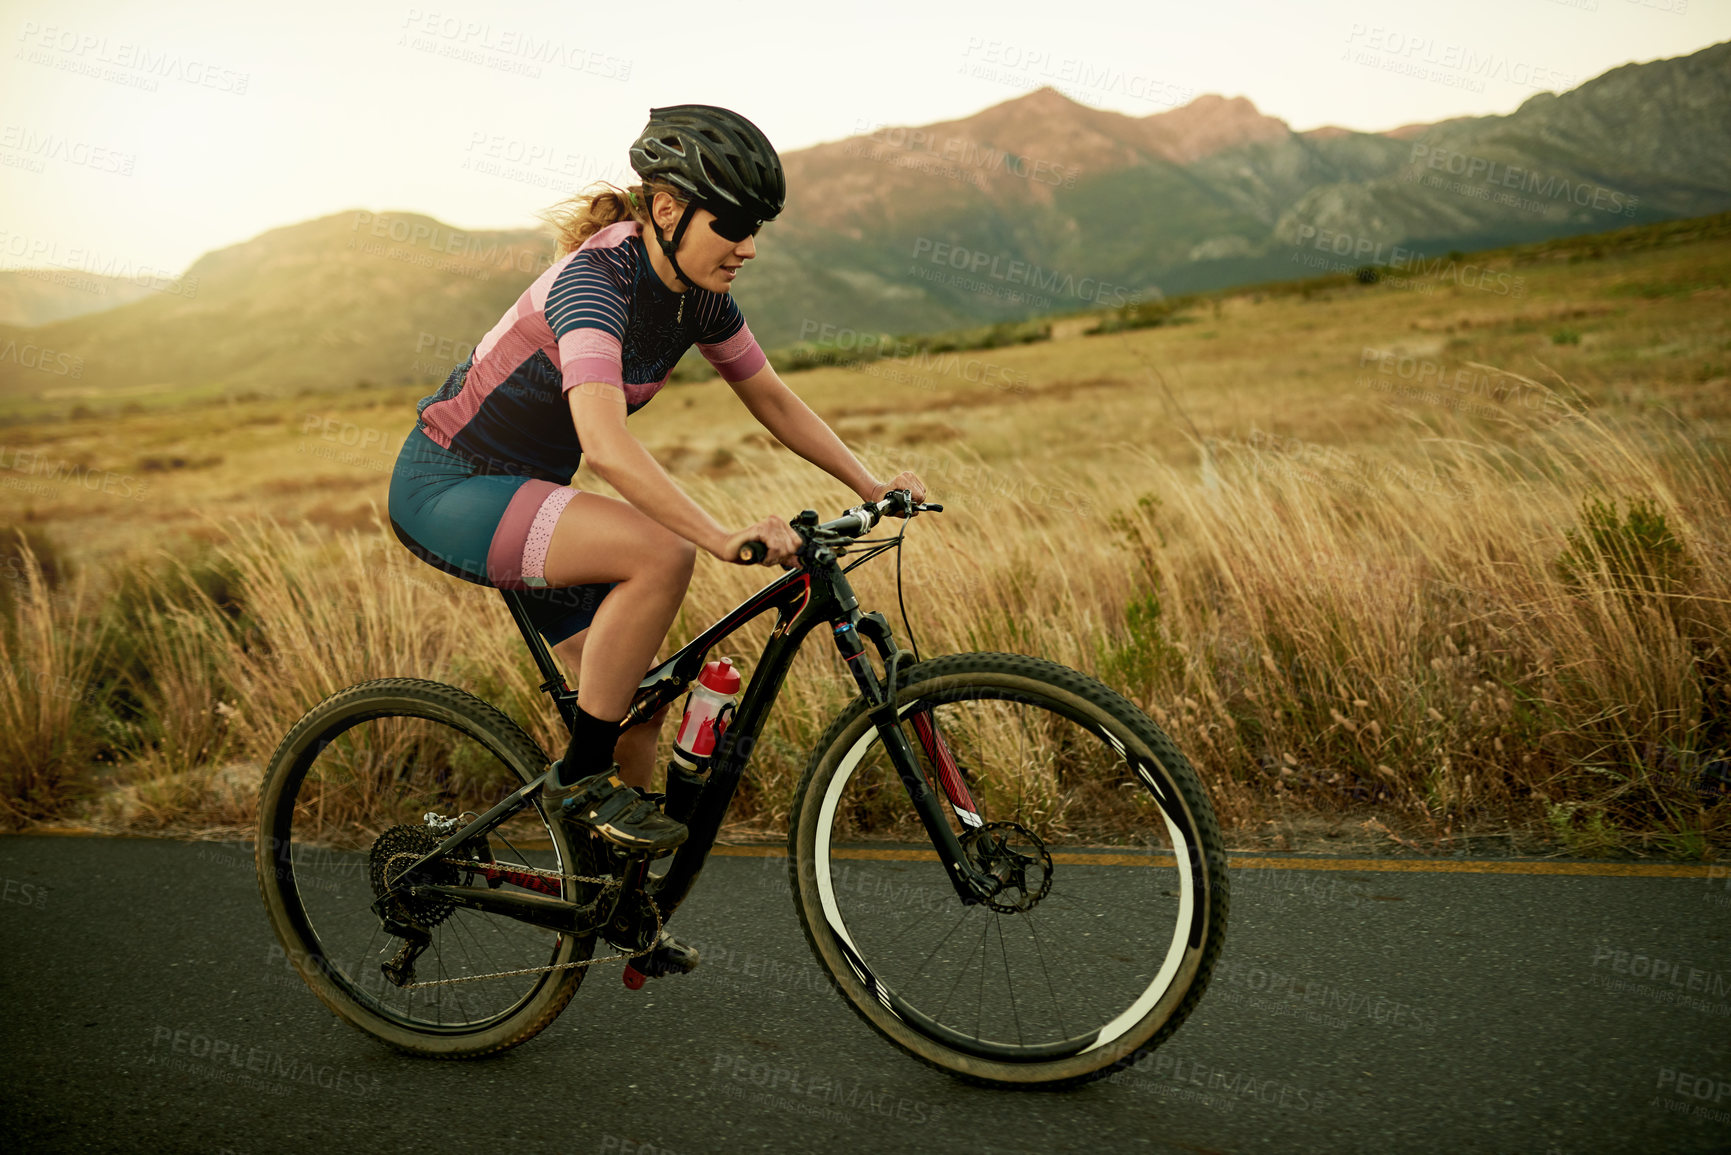 Buy stock photo Shot of a woman riding a bicycle out in the countryside